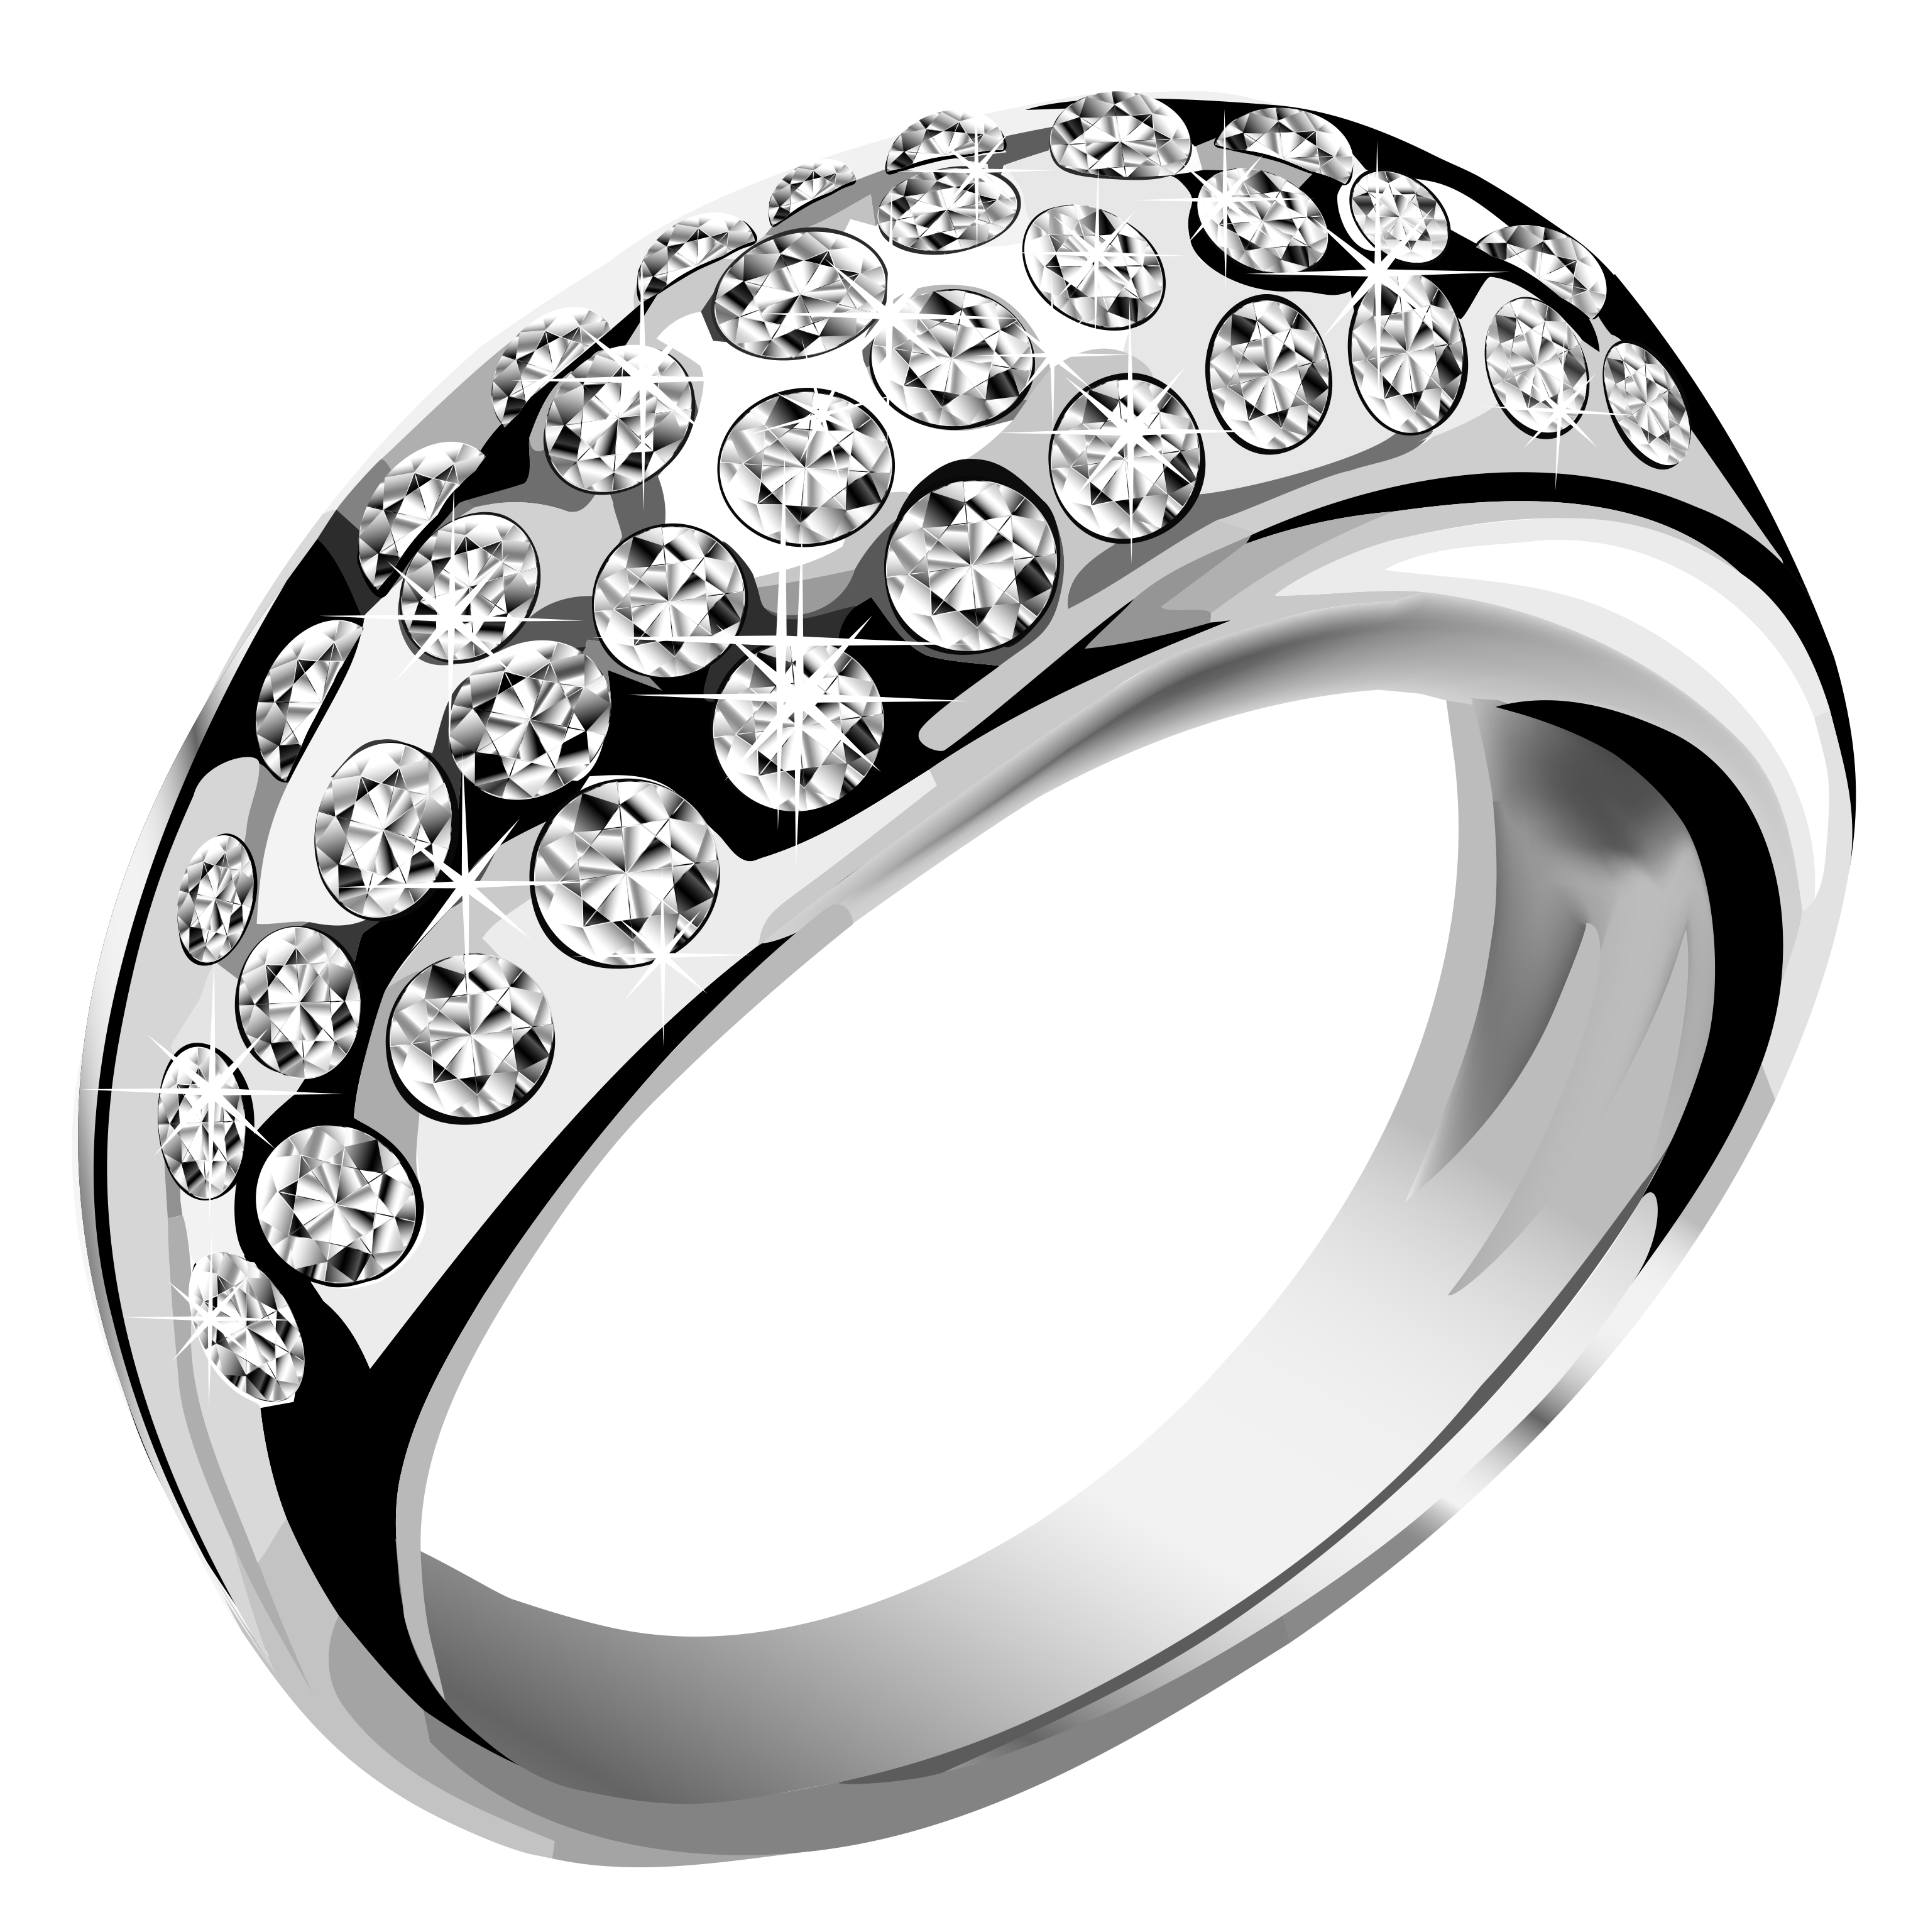 Silver Jewelry PNG Image